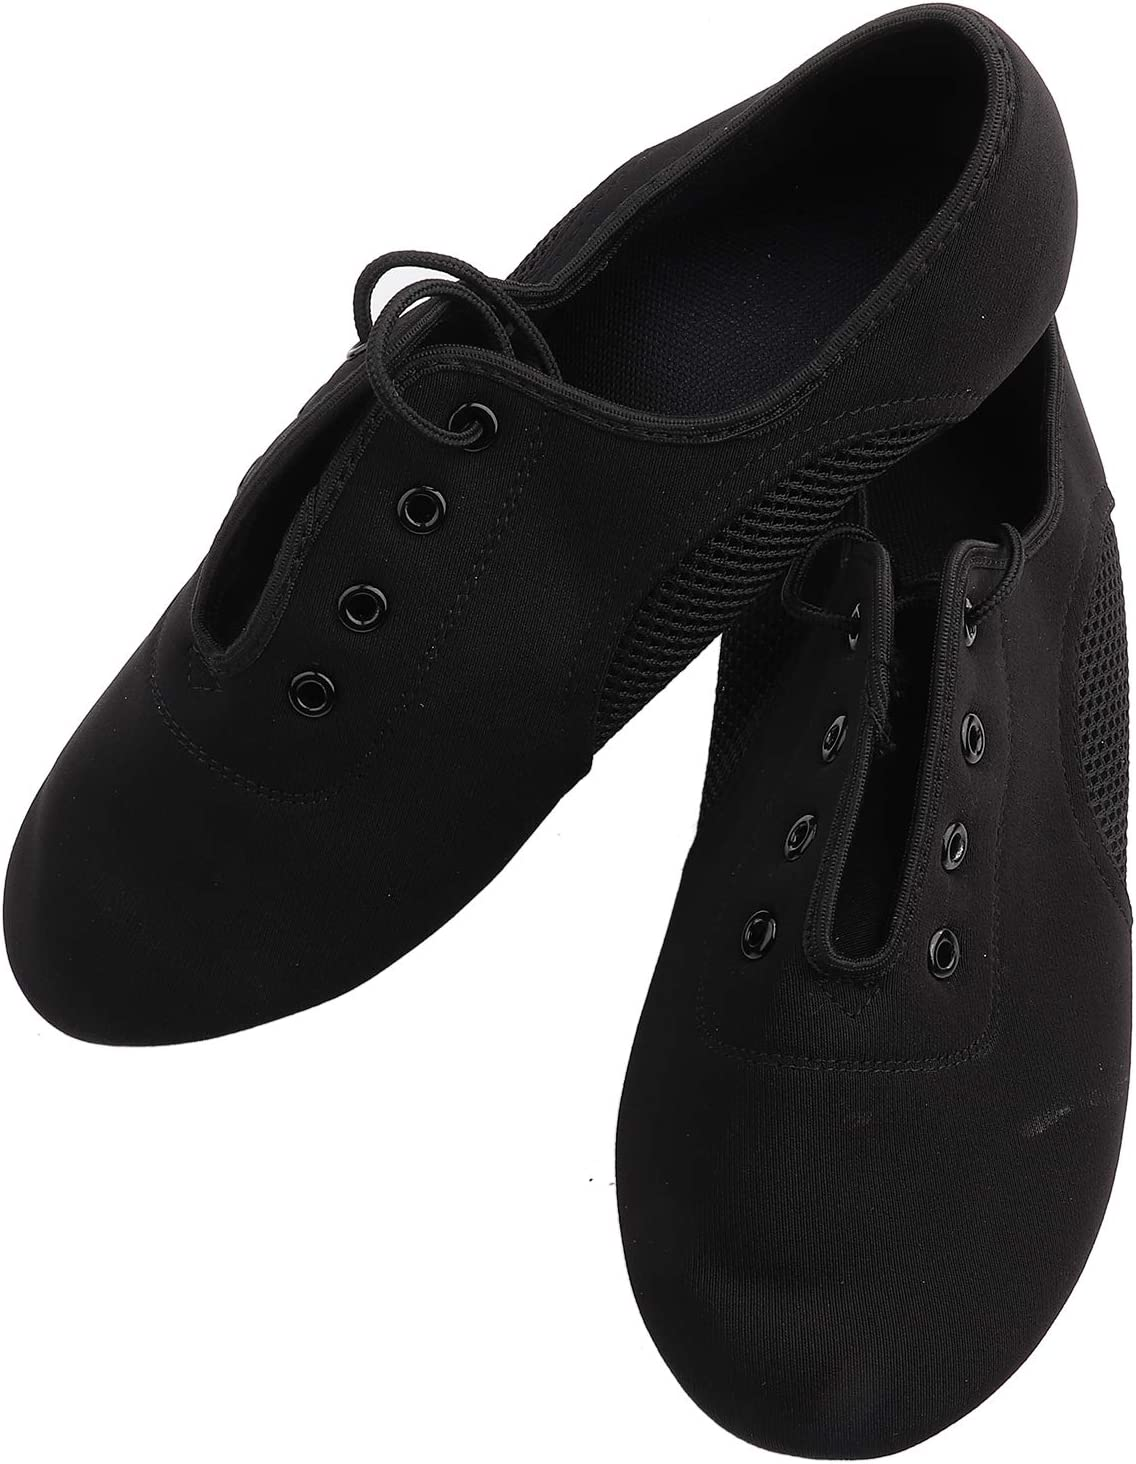 Max 68% OFF SALUTUY Dancing Shoes Free shipping Fine Material Dance Shoe Comfortable for